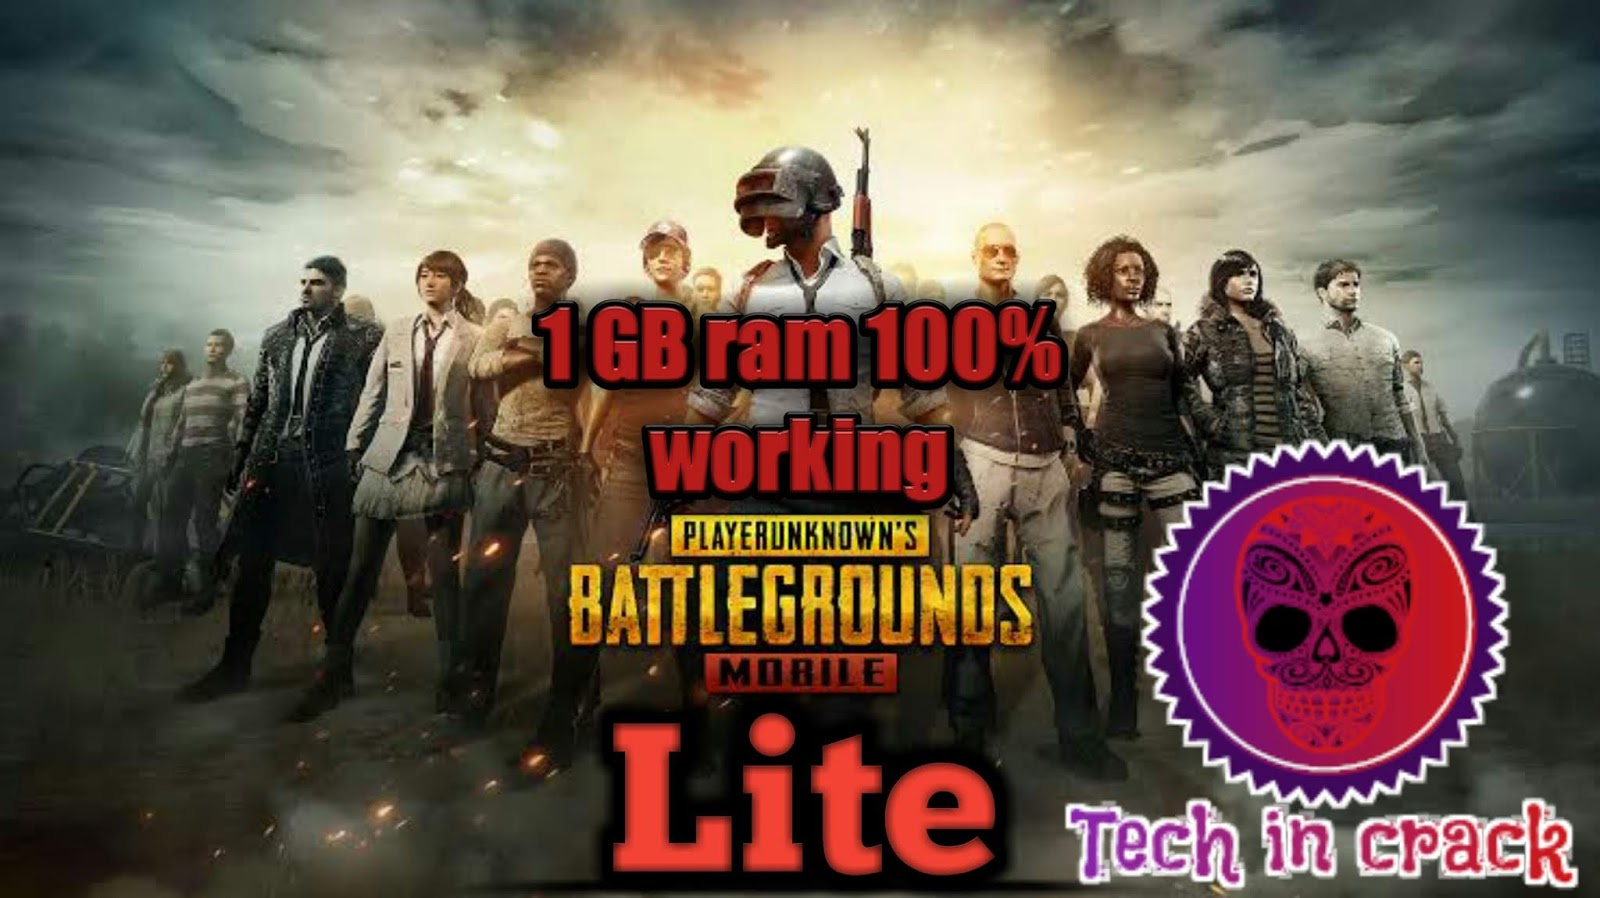 HOW TO RUN PUBG MOBILE LITE 1 GB RAM MOBILE | pubg mobile lite